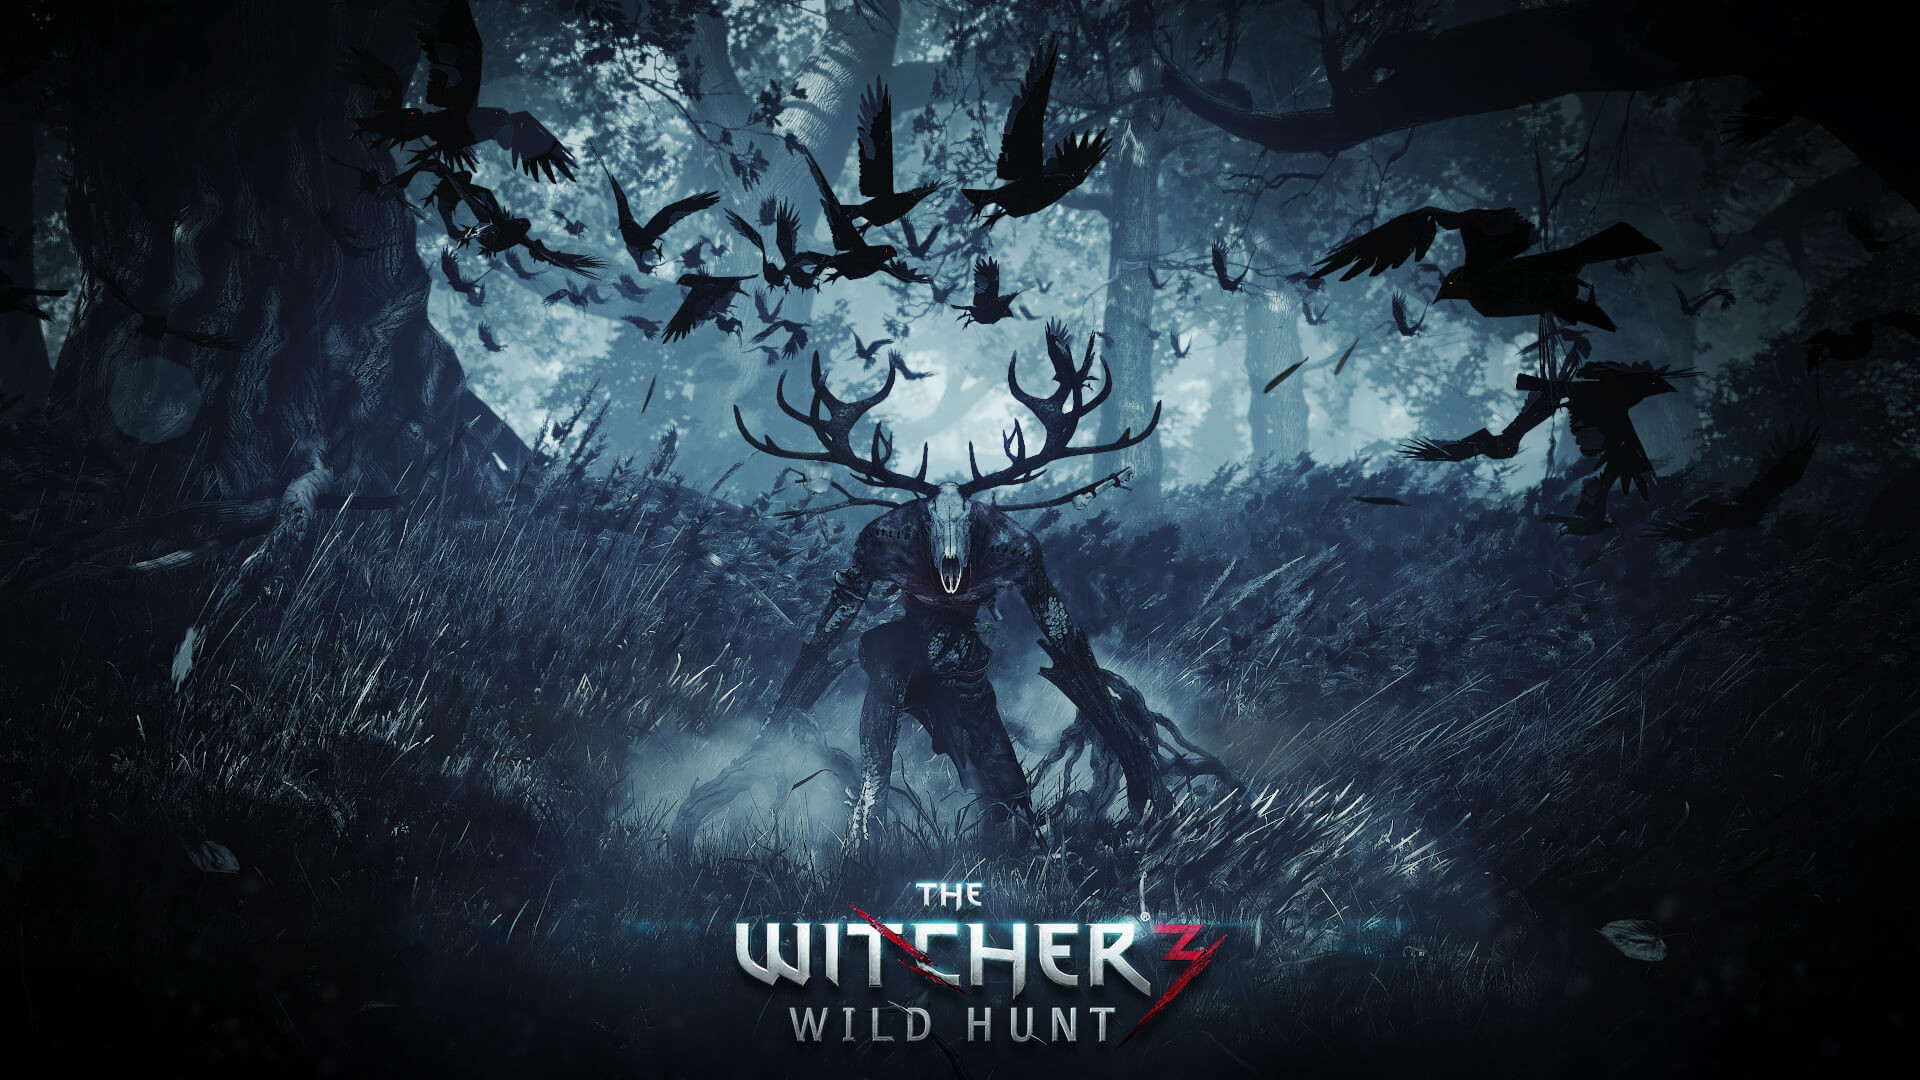 1920x1080 The Witcher 3: Wild Hunt 1080p Leshen Wallpaper ...